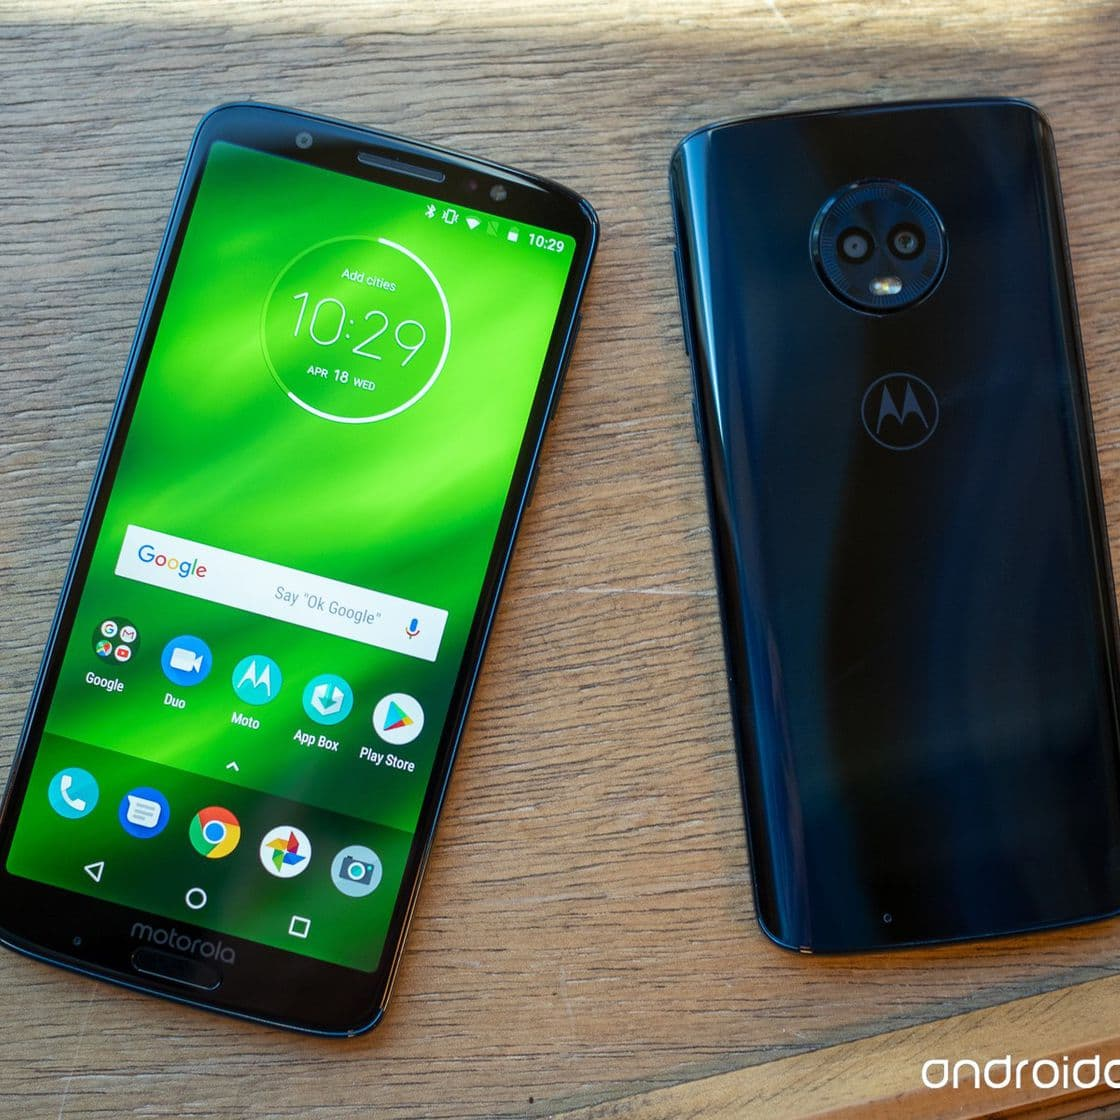 Compare Phones Side By Side >> Motorola Moto G6 Plus buy smartphone, compare prices in stores. Motorola Moto G6 Plus - opinions ...